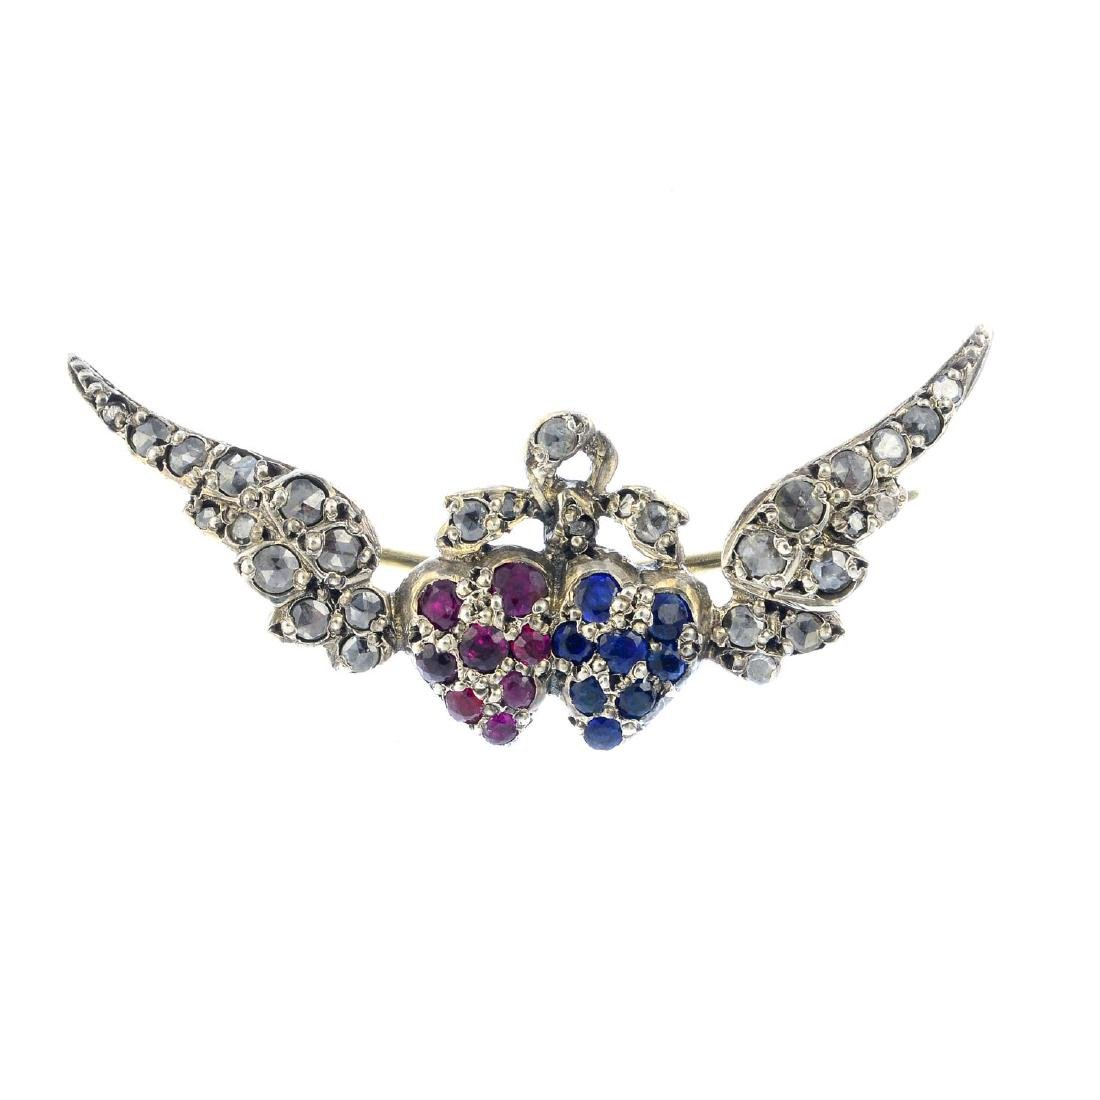 An early 20th century gem-set brooch. The